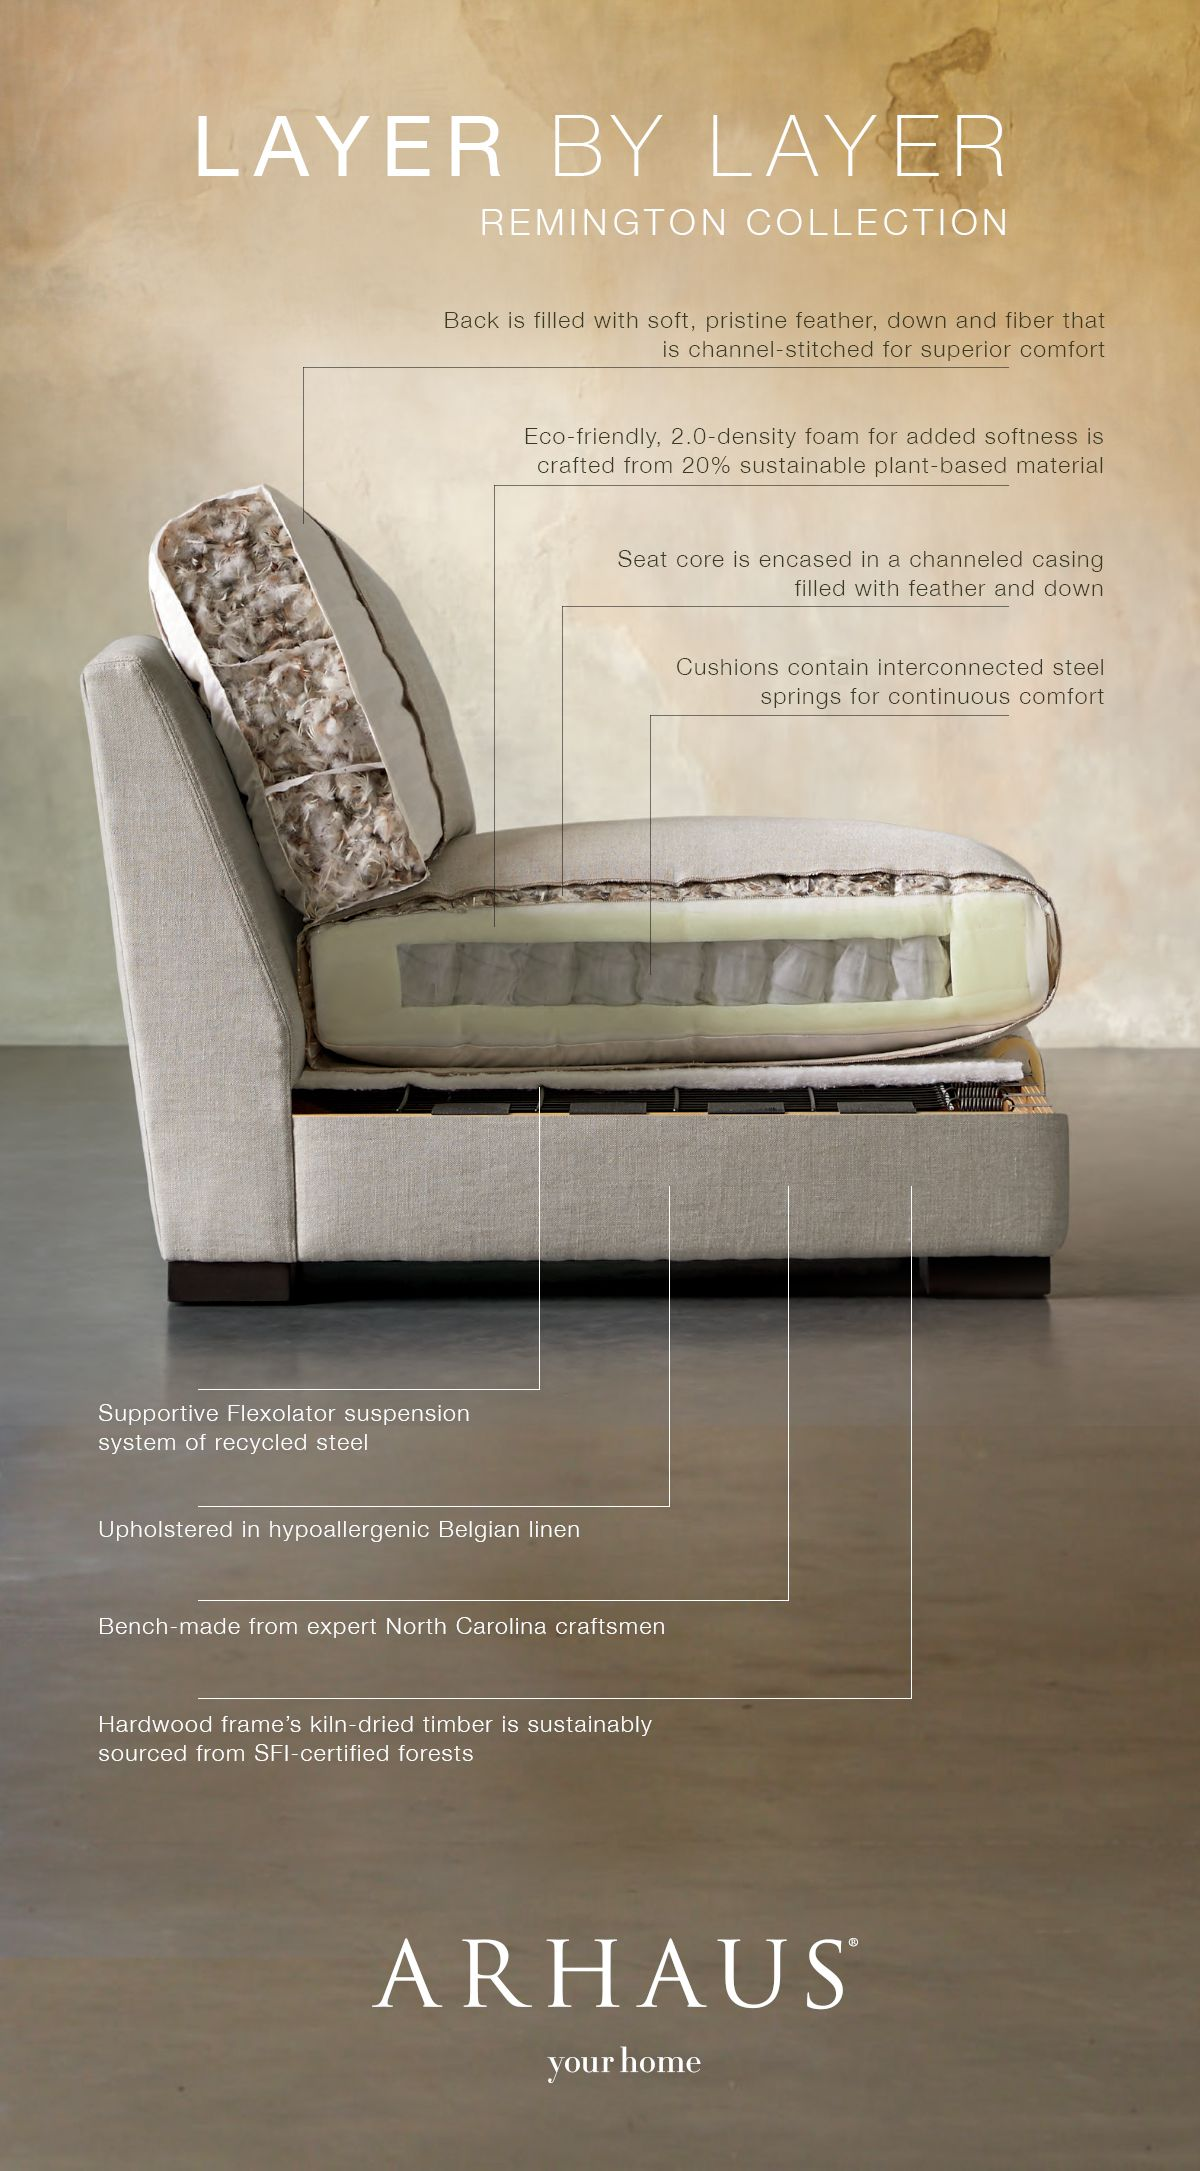 Explore The Inner Workings Of One Of Arhaus Best Sofas And